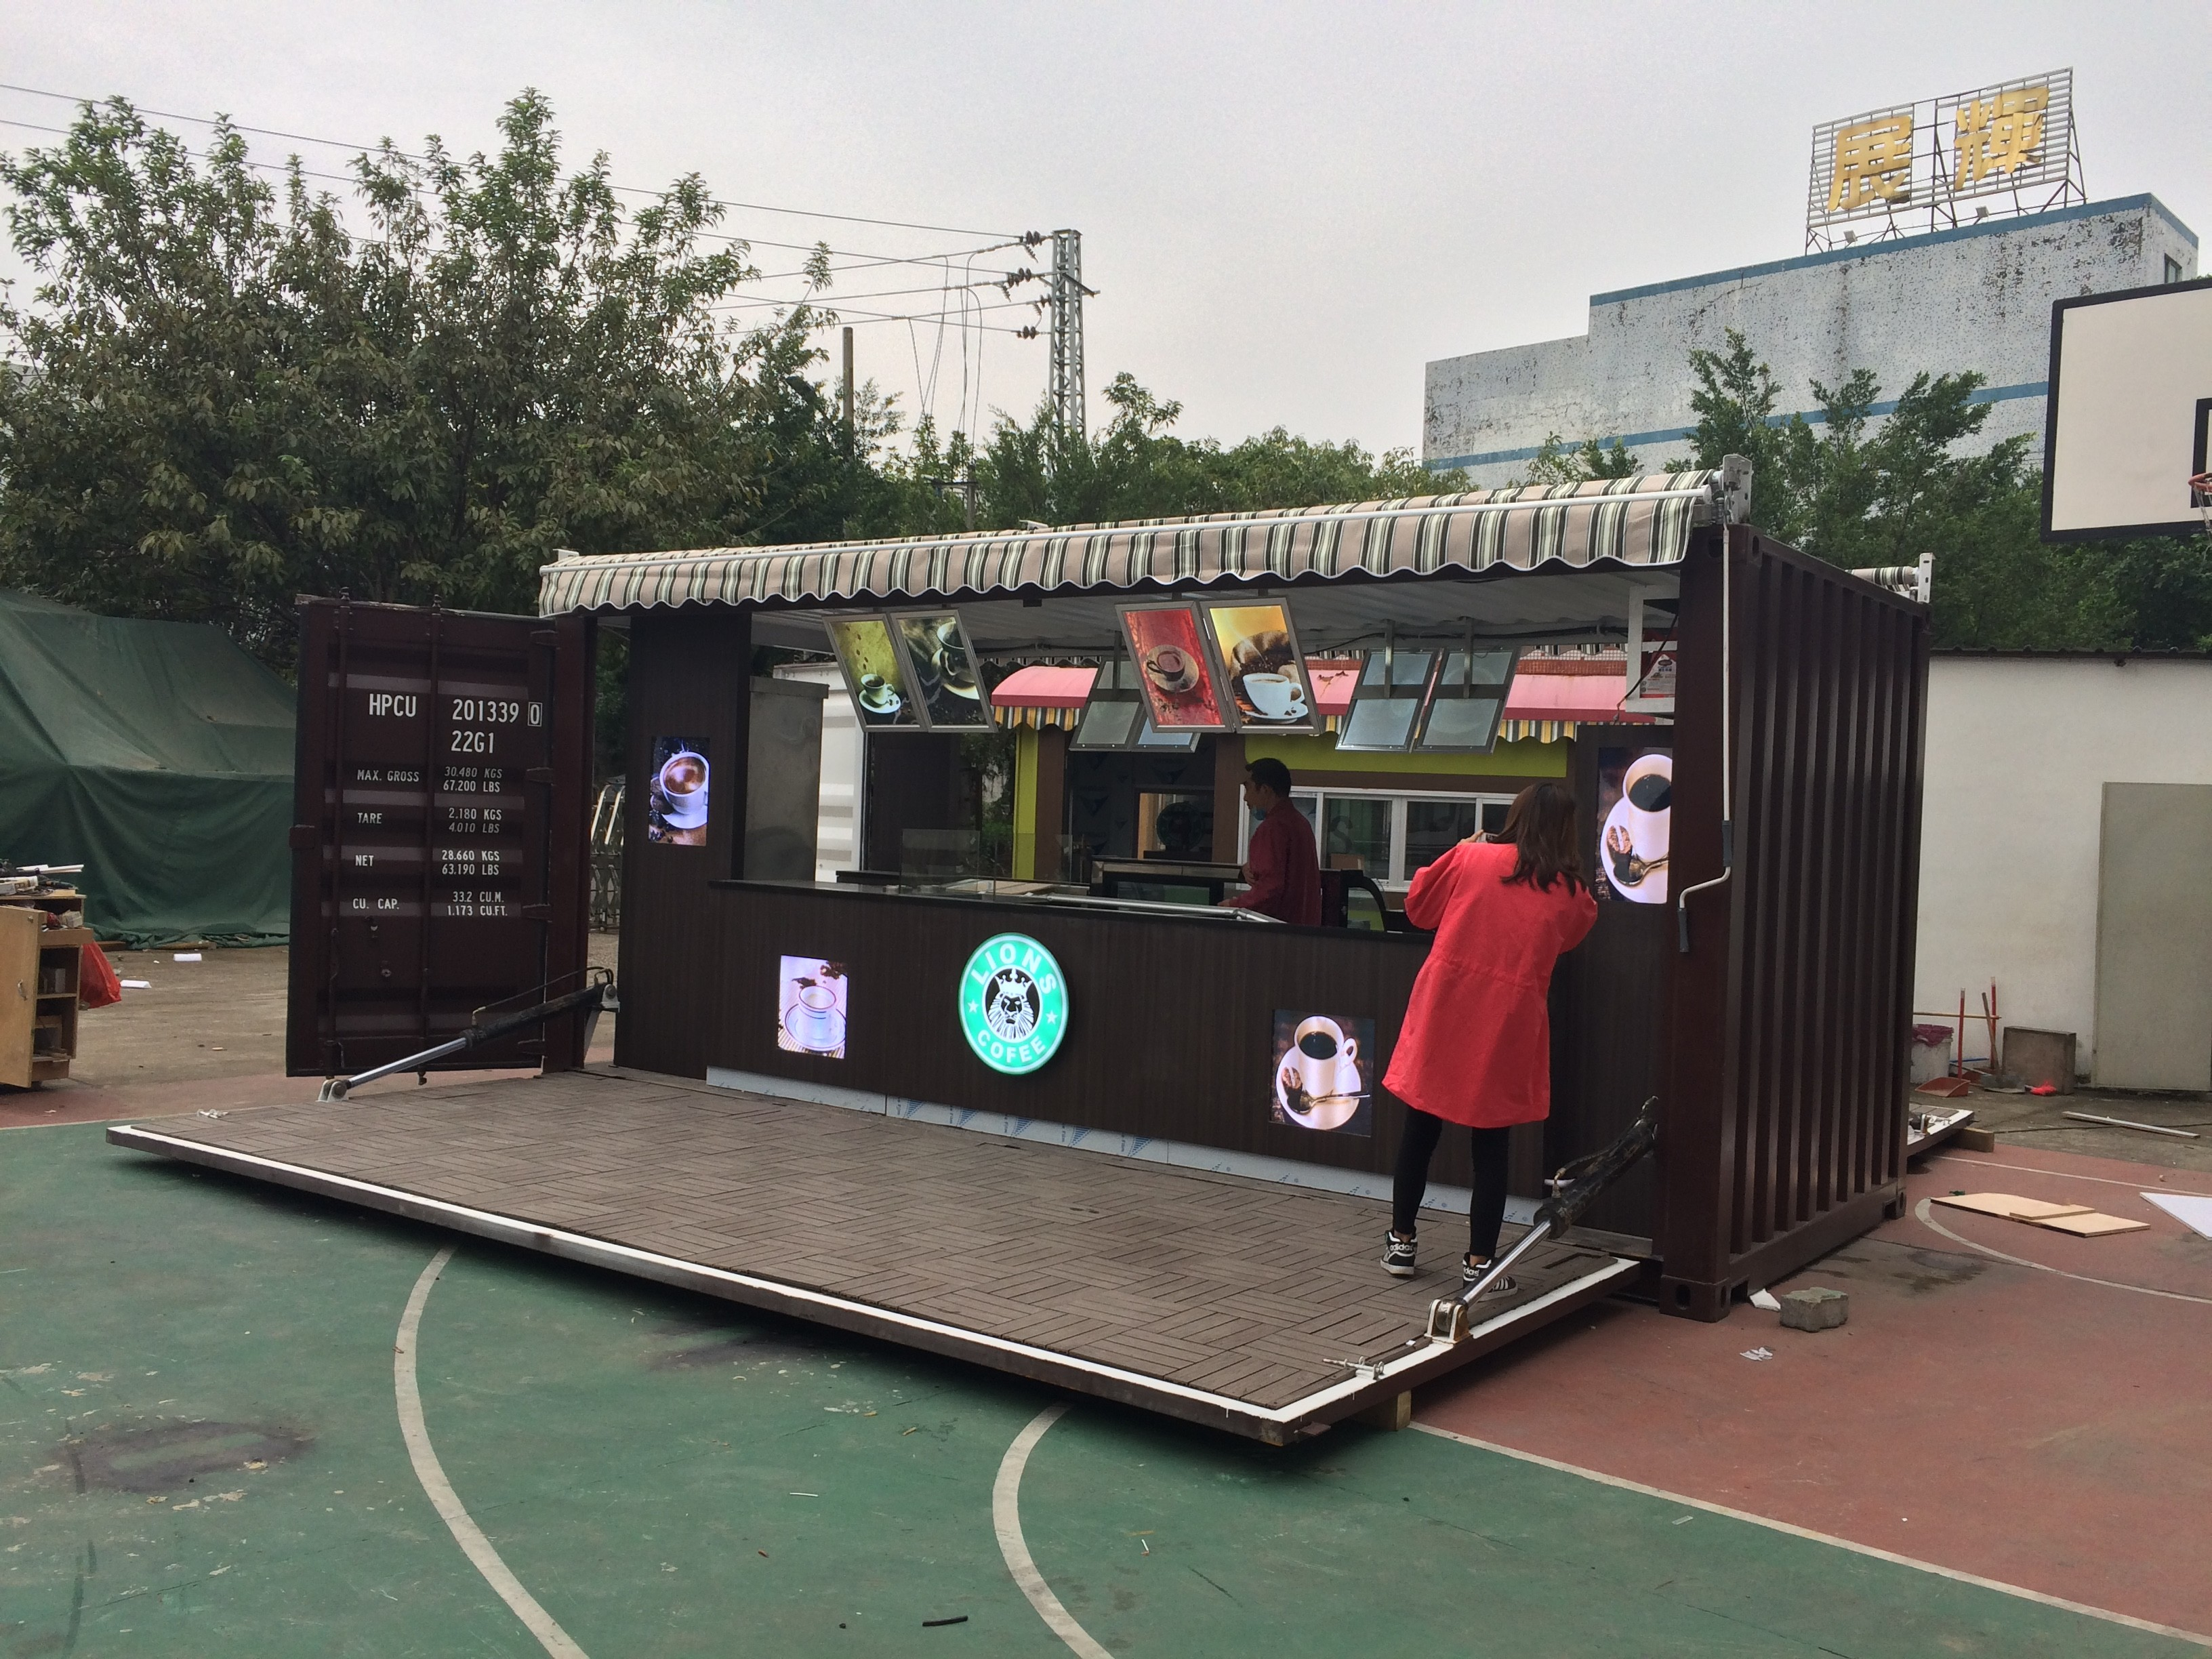 20ft Shipping Container >> Outdoor 20ft Shipping container kiosk into cafe | Mall ...